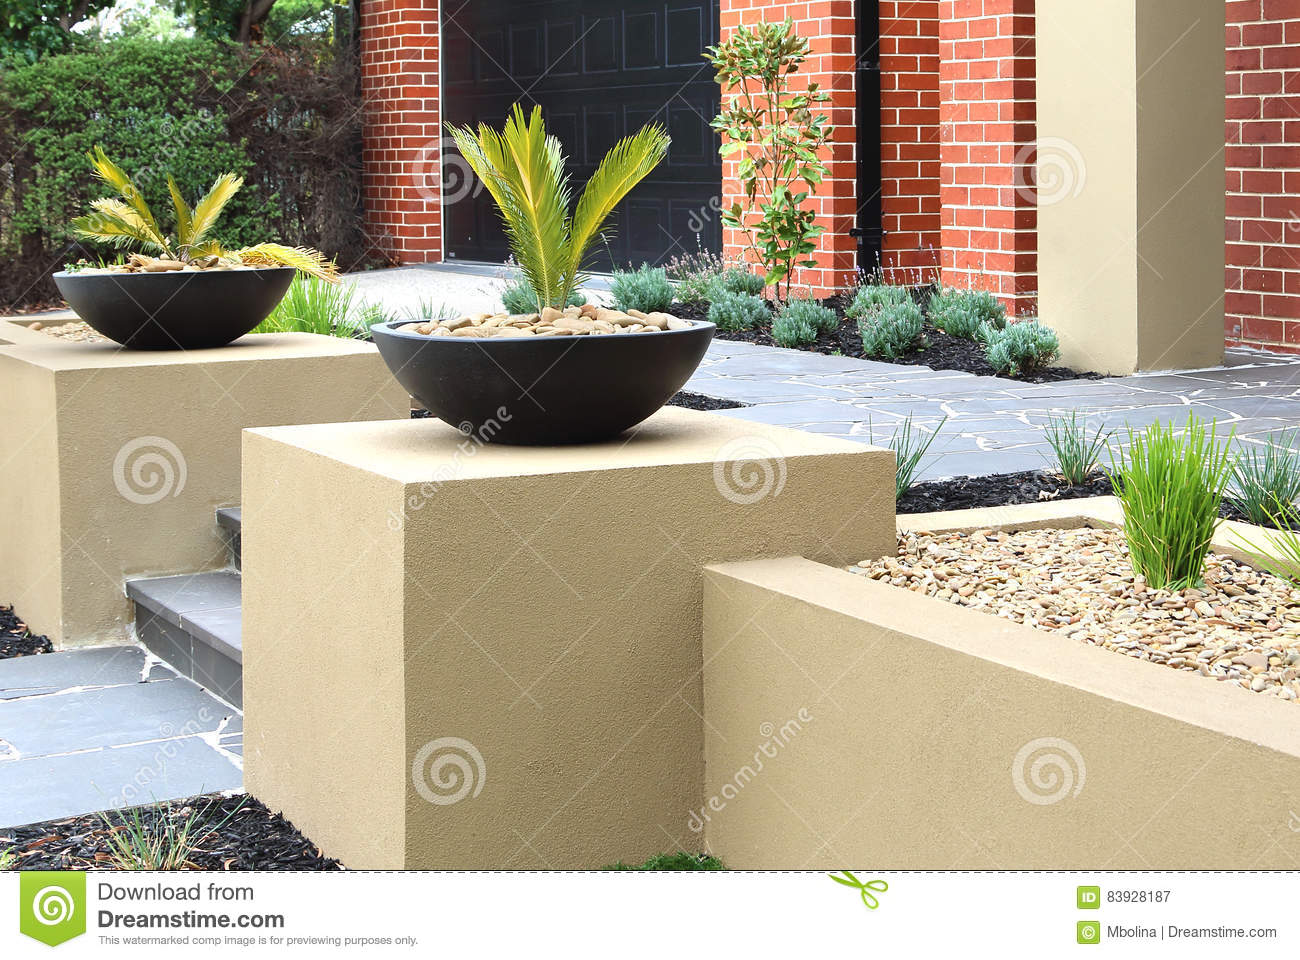 Modern Front Yard Design Ideas Stock Image - Image of lawn, grass ...